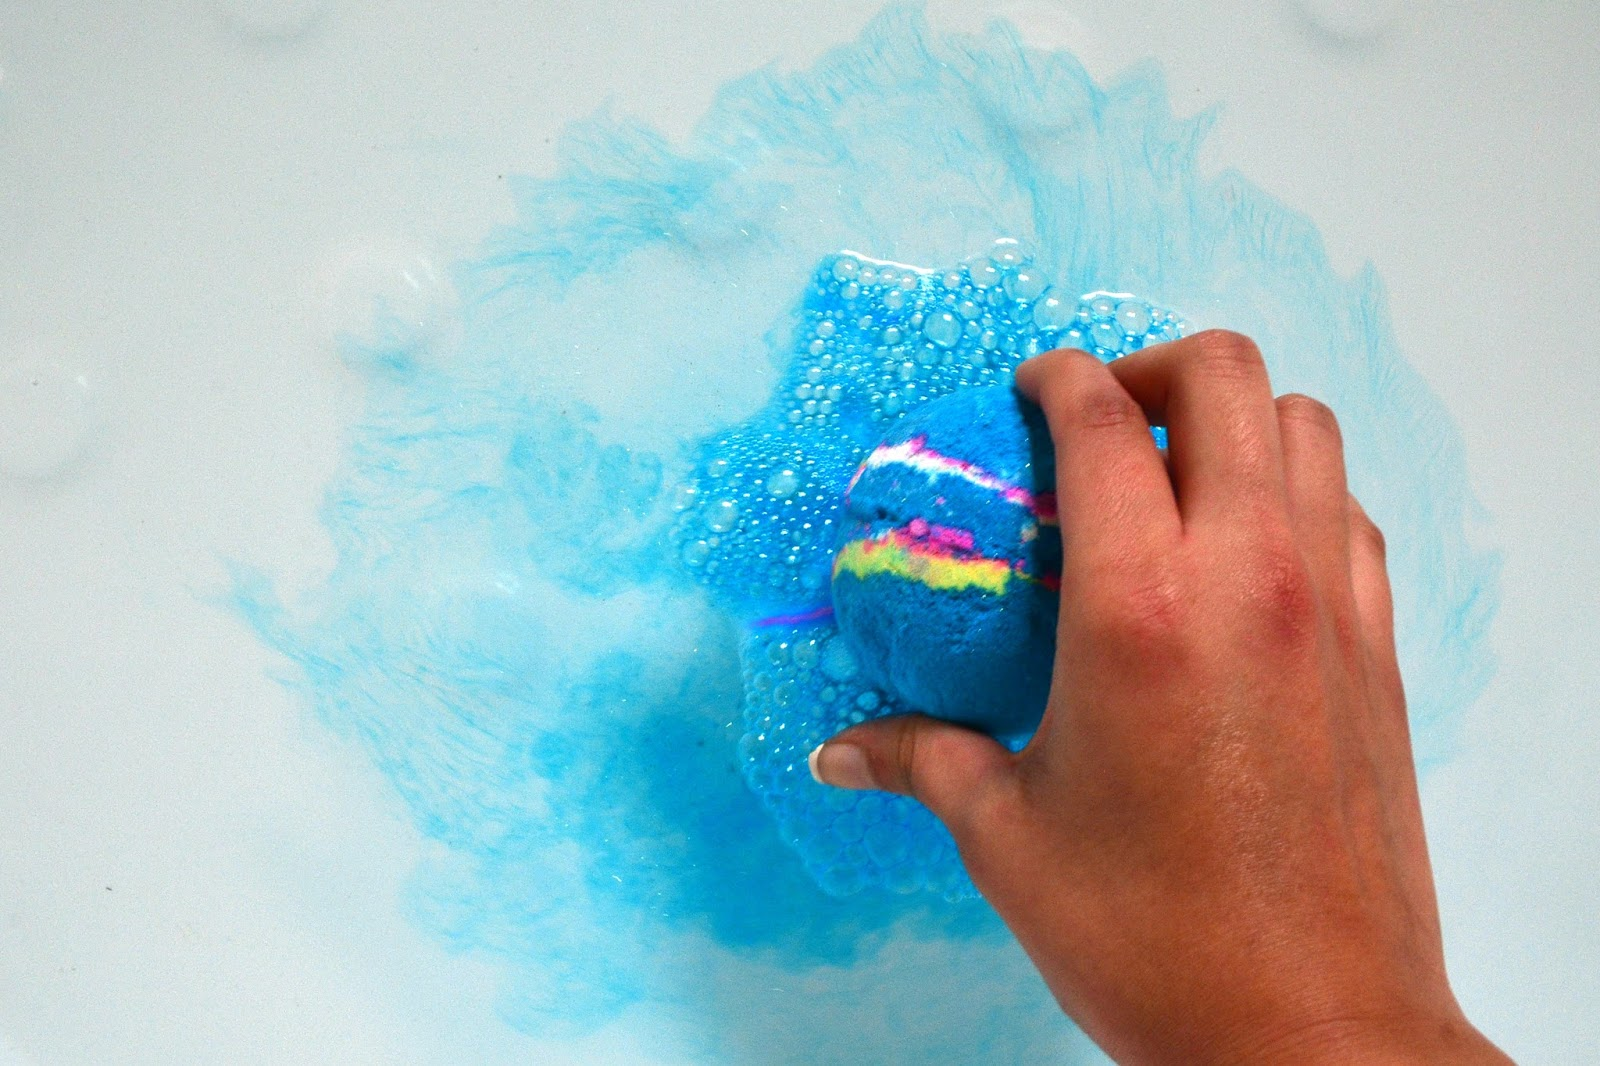 Attirant The Moment You Place The Bath Bomb Into The Water, The Blue  Disperses Across